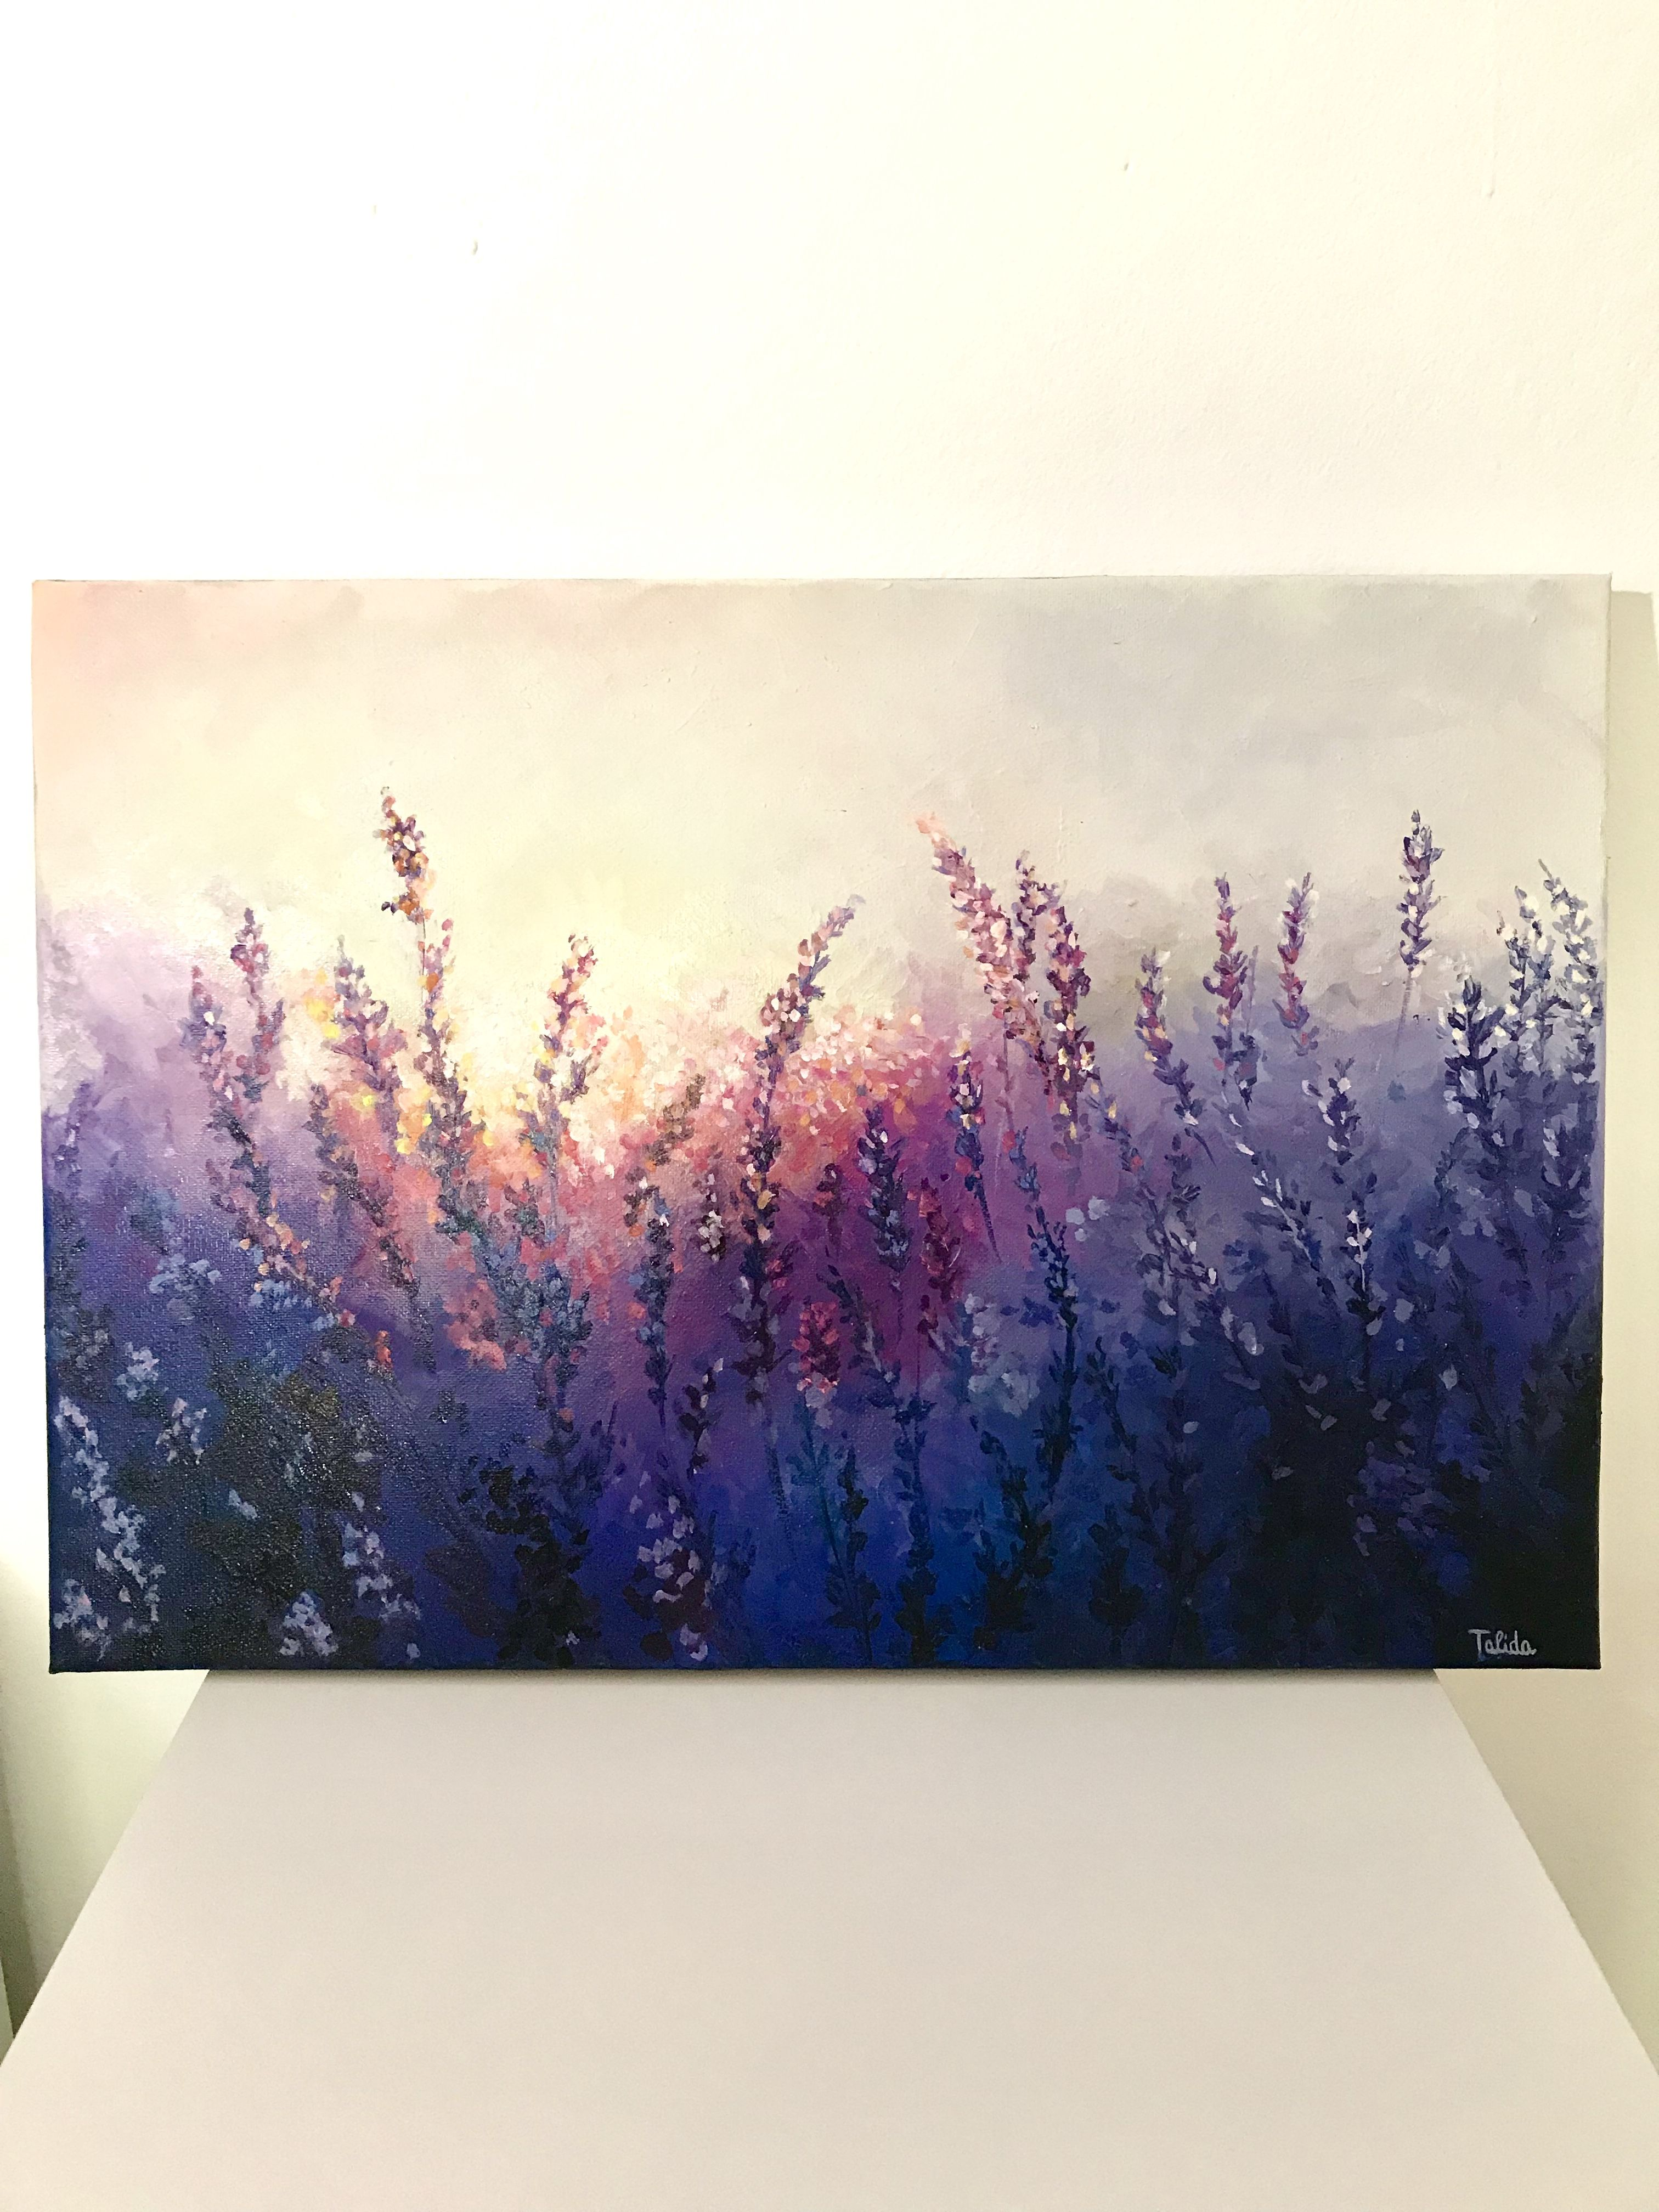 Oil painting on canvas (With images) Flower painting